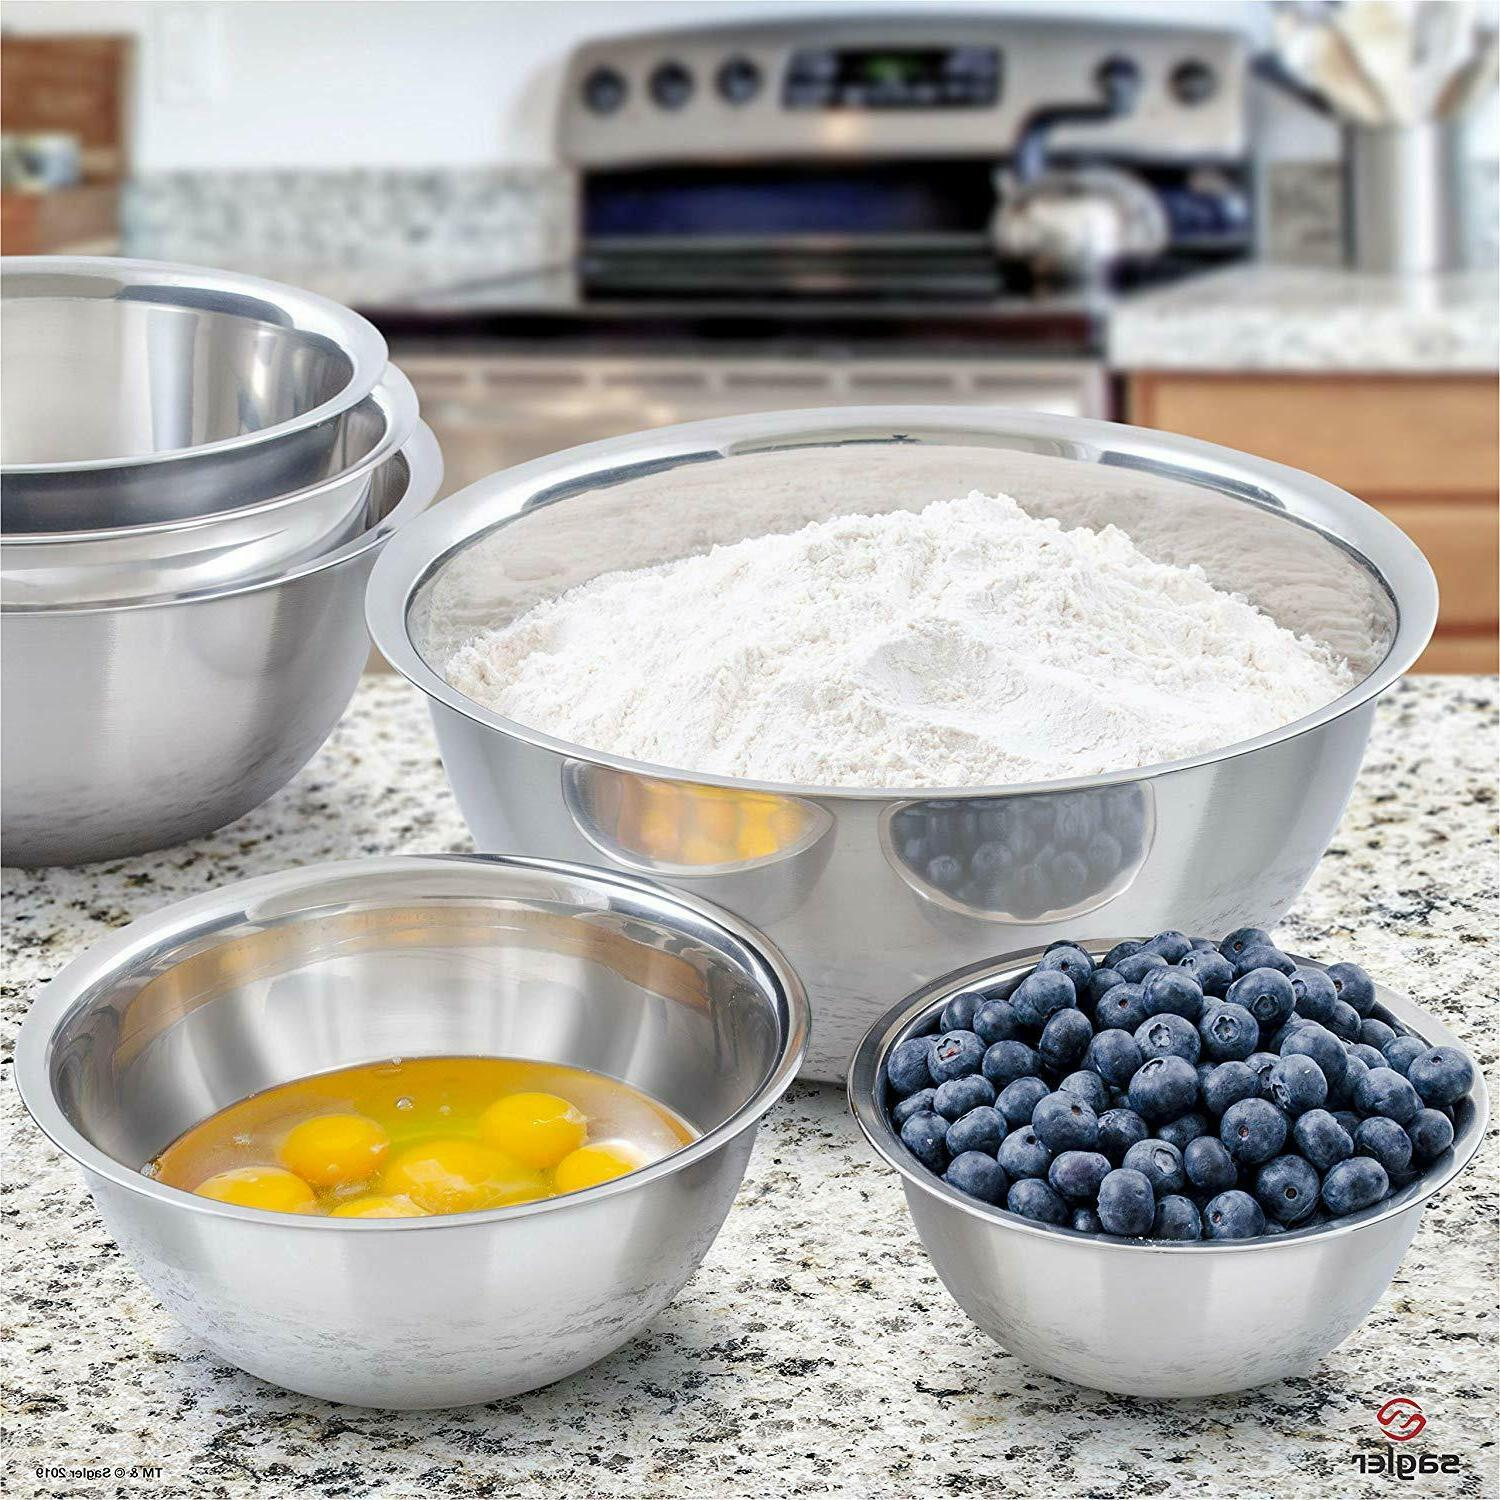 Mixing Stainless Bakeware & Serving of 6